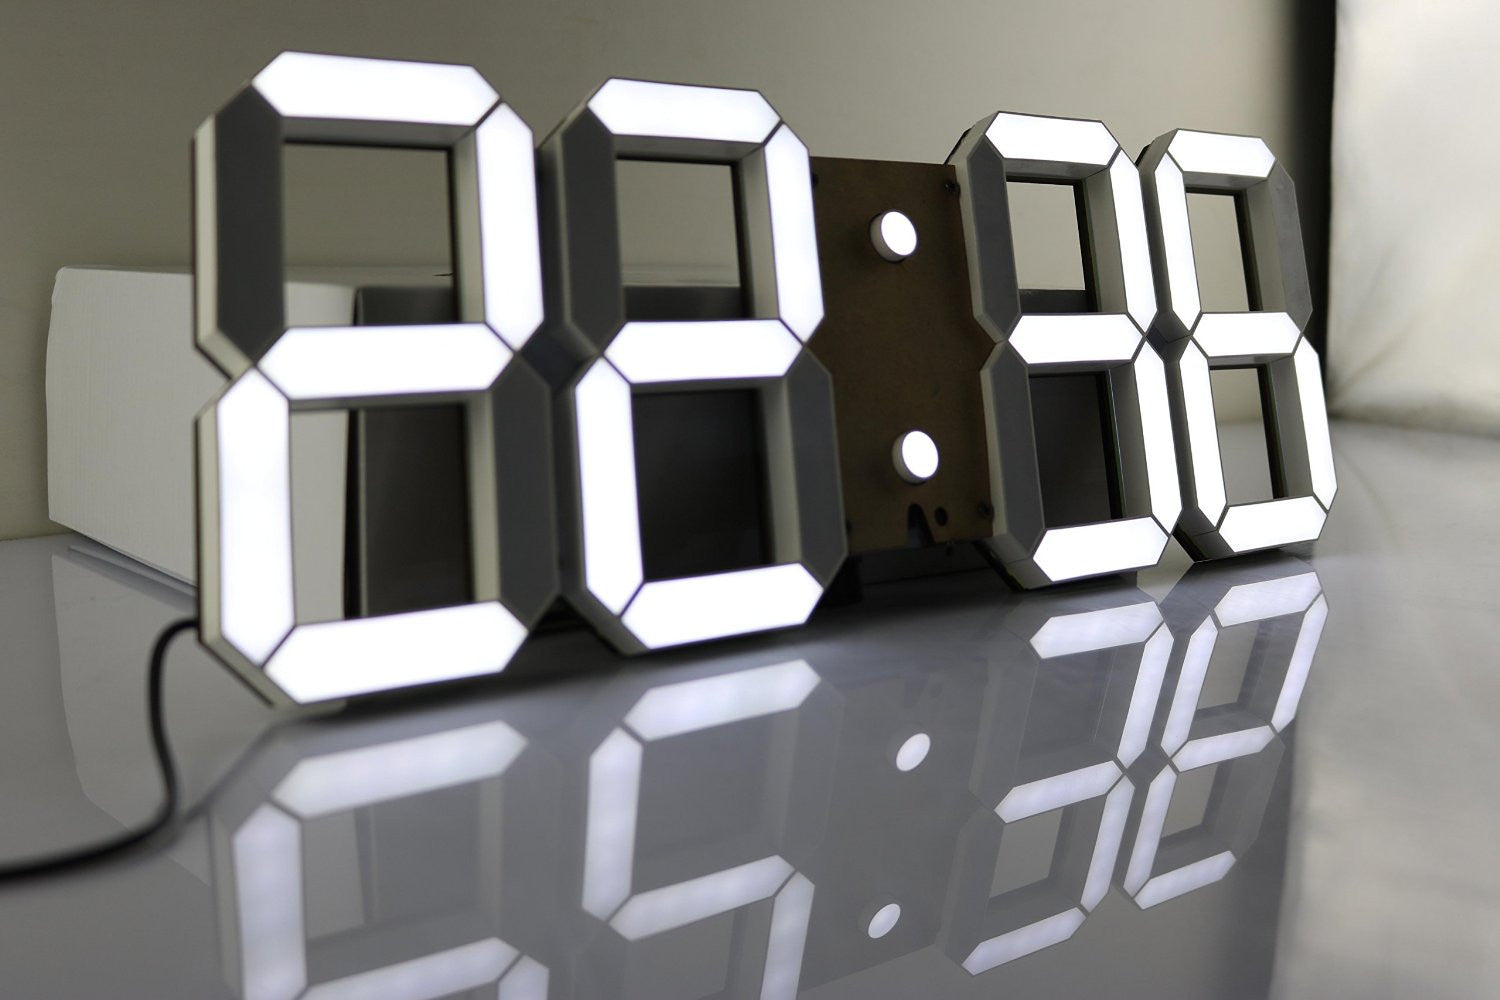 Multi Functional Remote Control Large Led Digital Wall Clock With How To Build 28 Timer Countdown Temperature Date Modern Design Black Back Ground